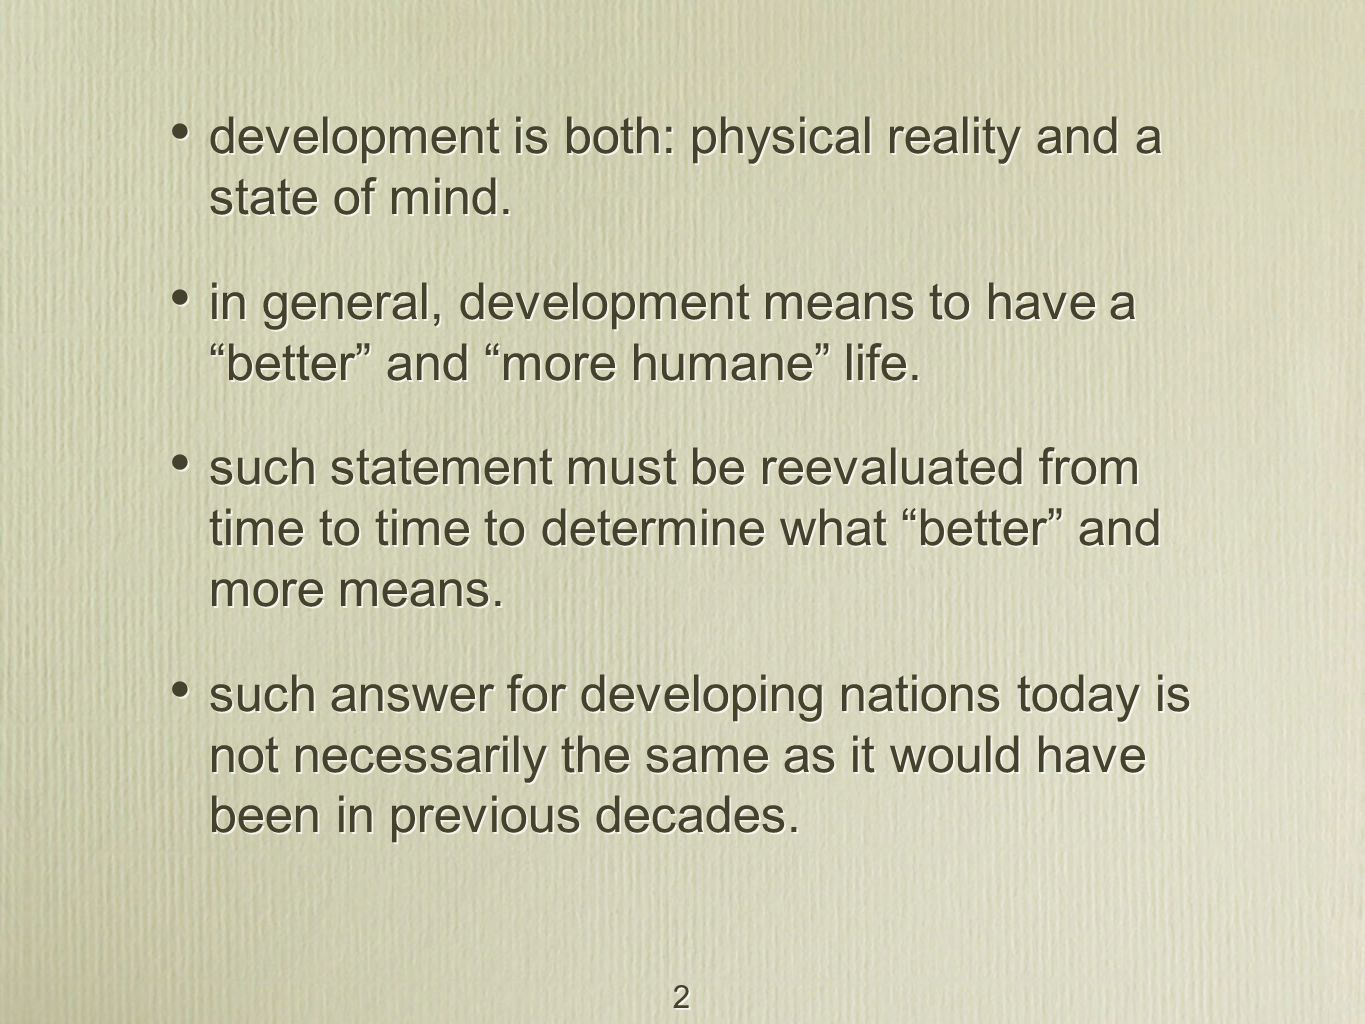 development is both: physical reality and a state of mind.